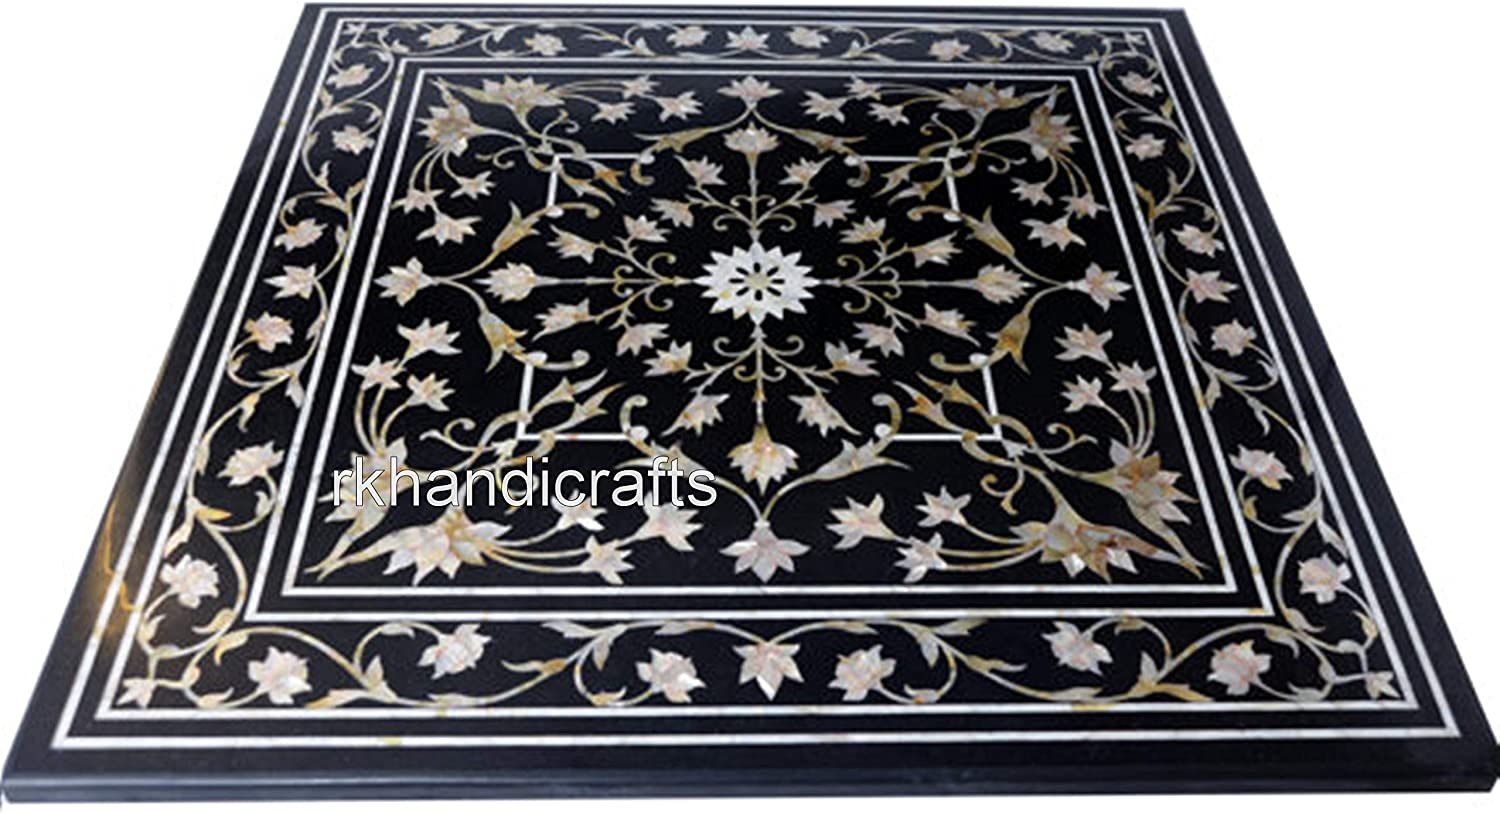 Cheap sale 30 Inches Black Marble Coffee Table Stones Precious Quality inspection Top Inl Semi